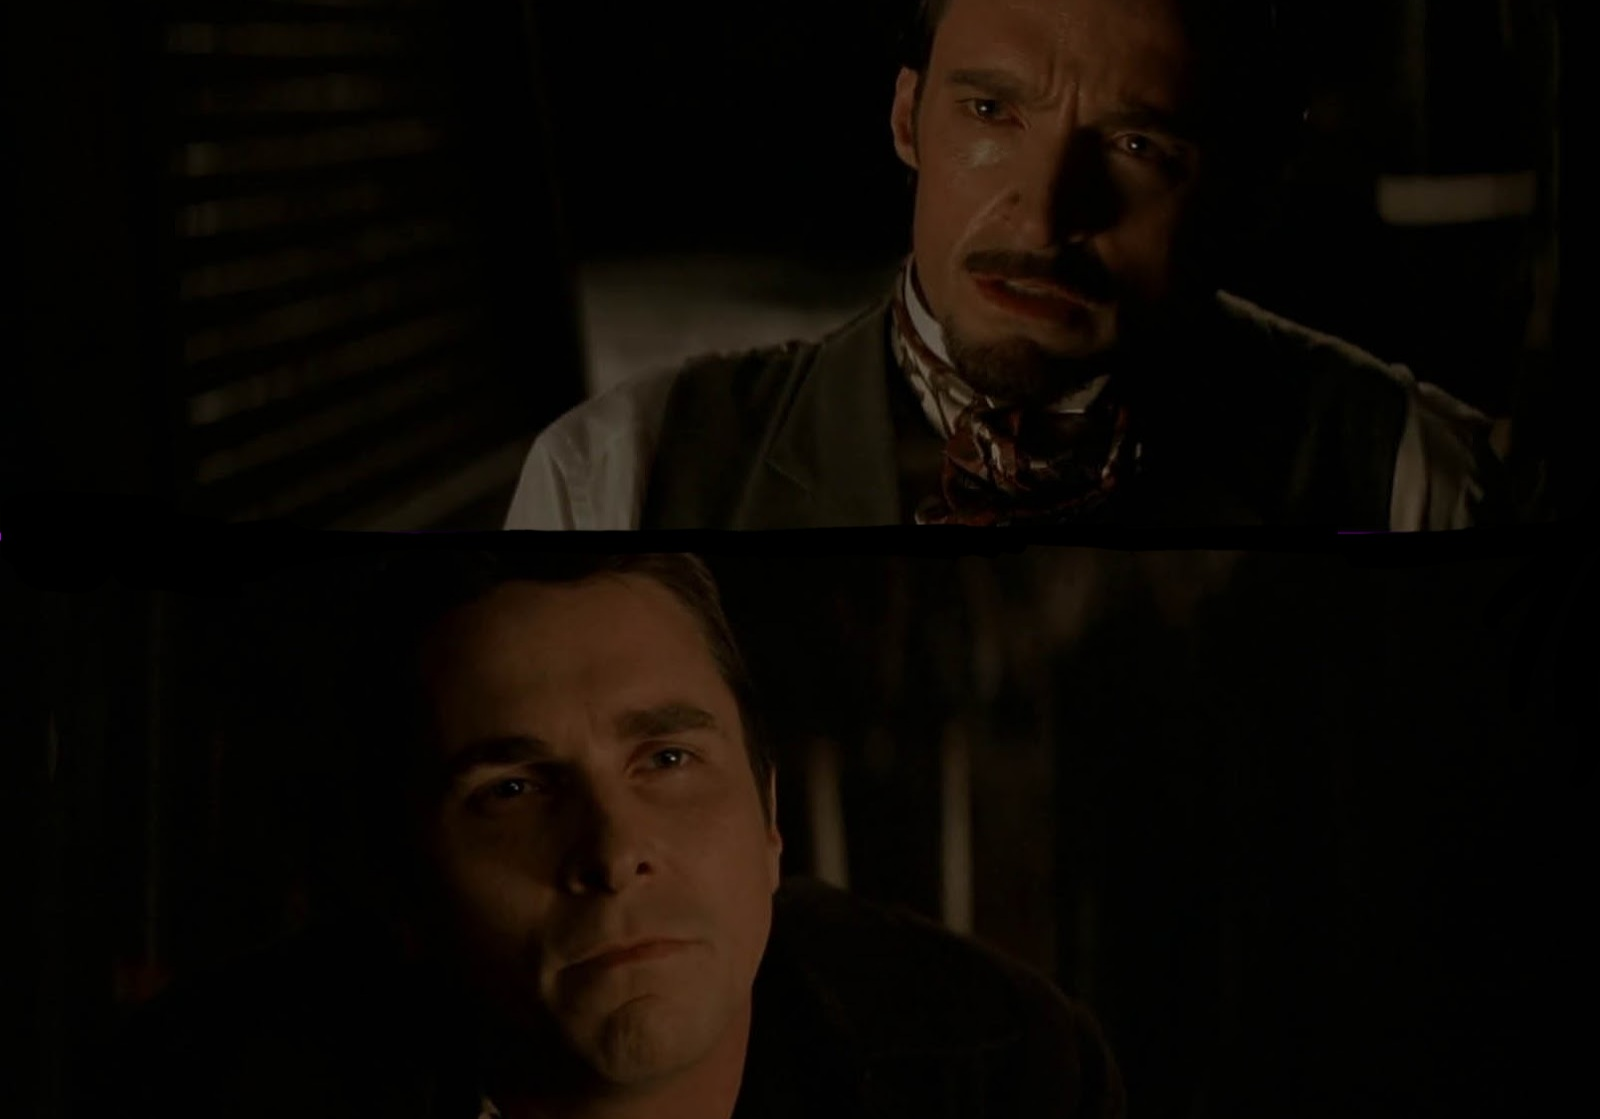 Who dies at the ending of The Prestige